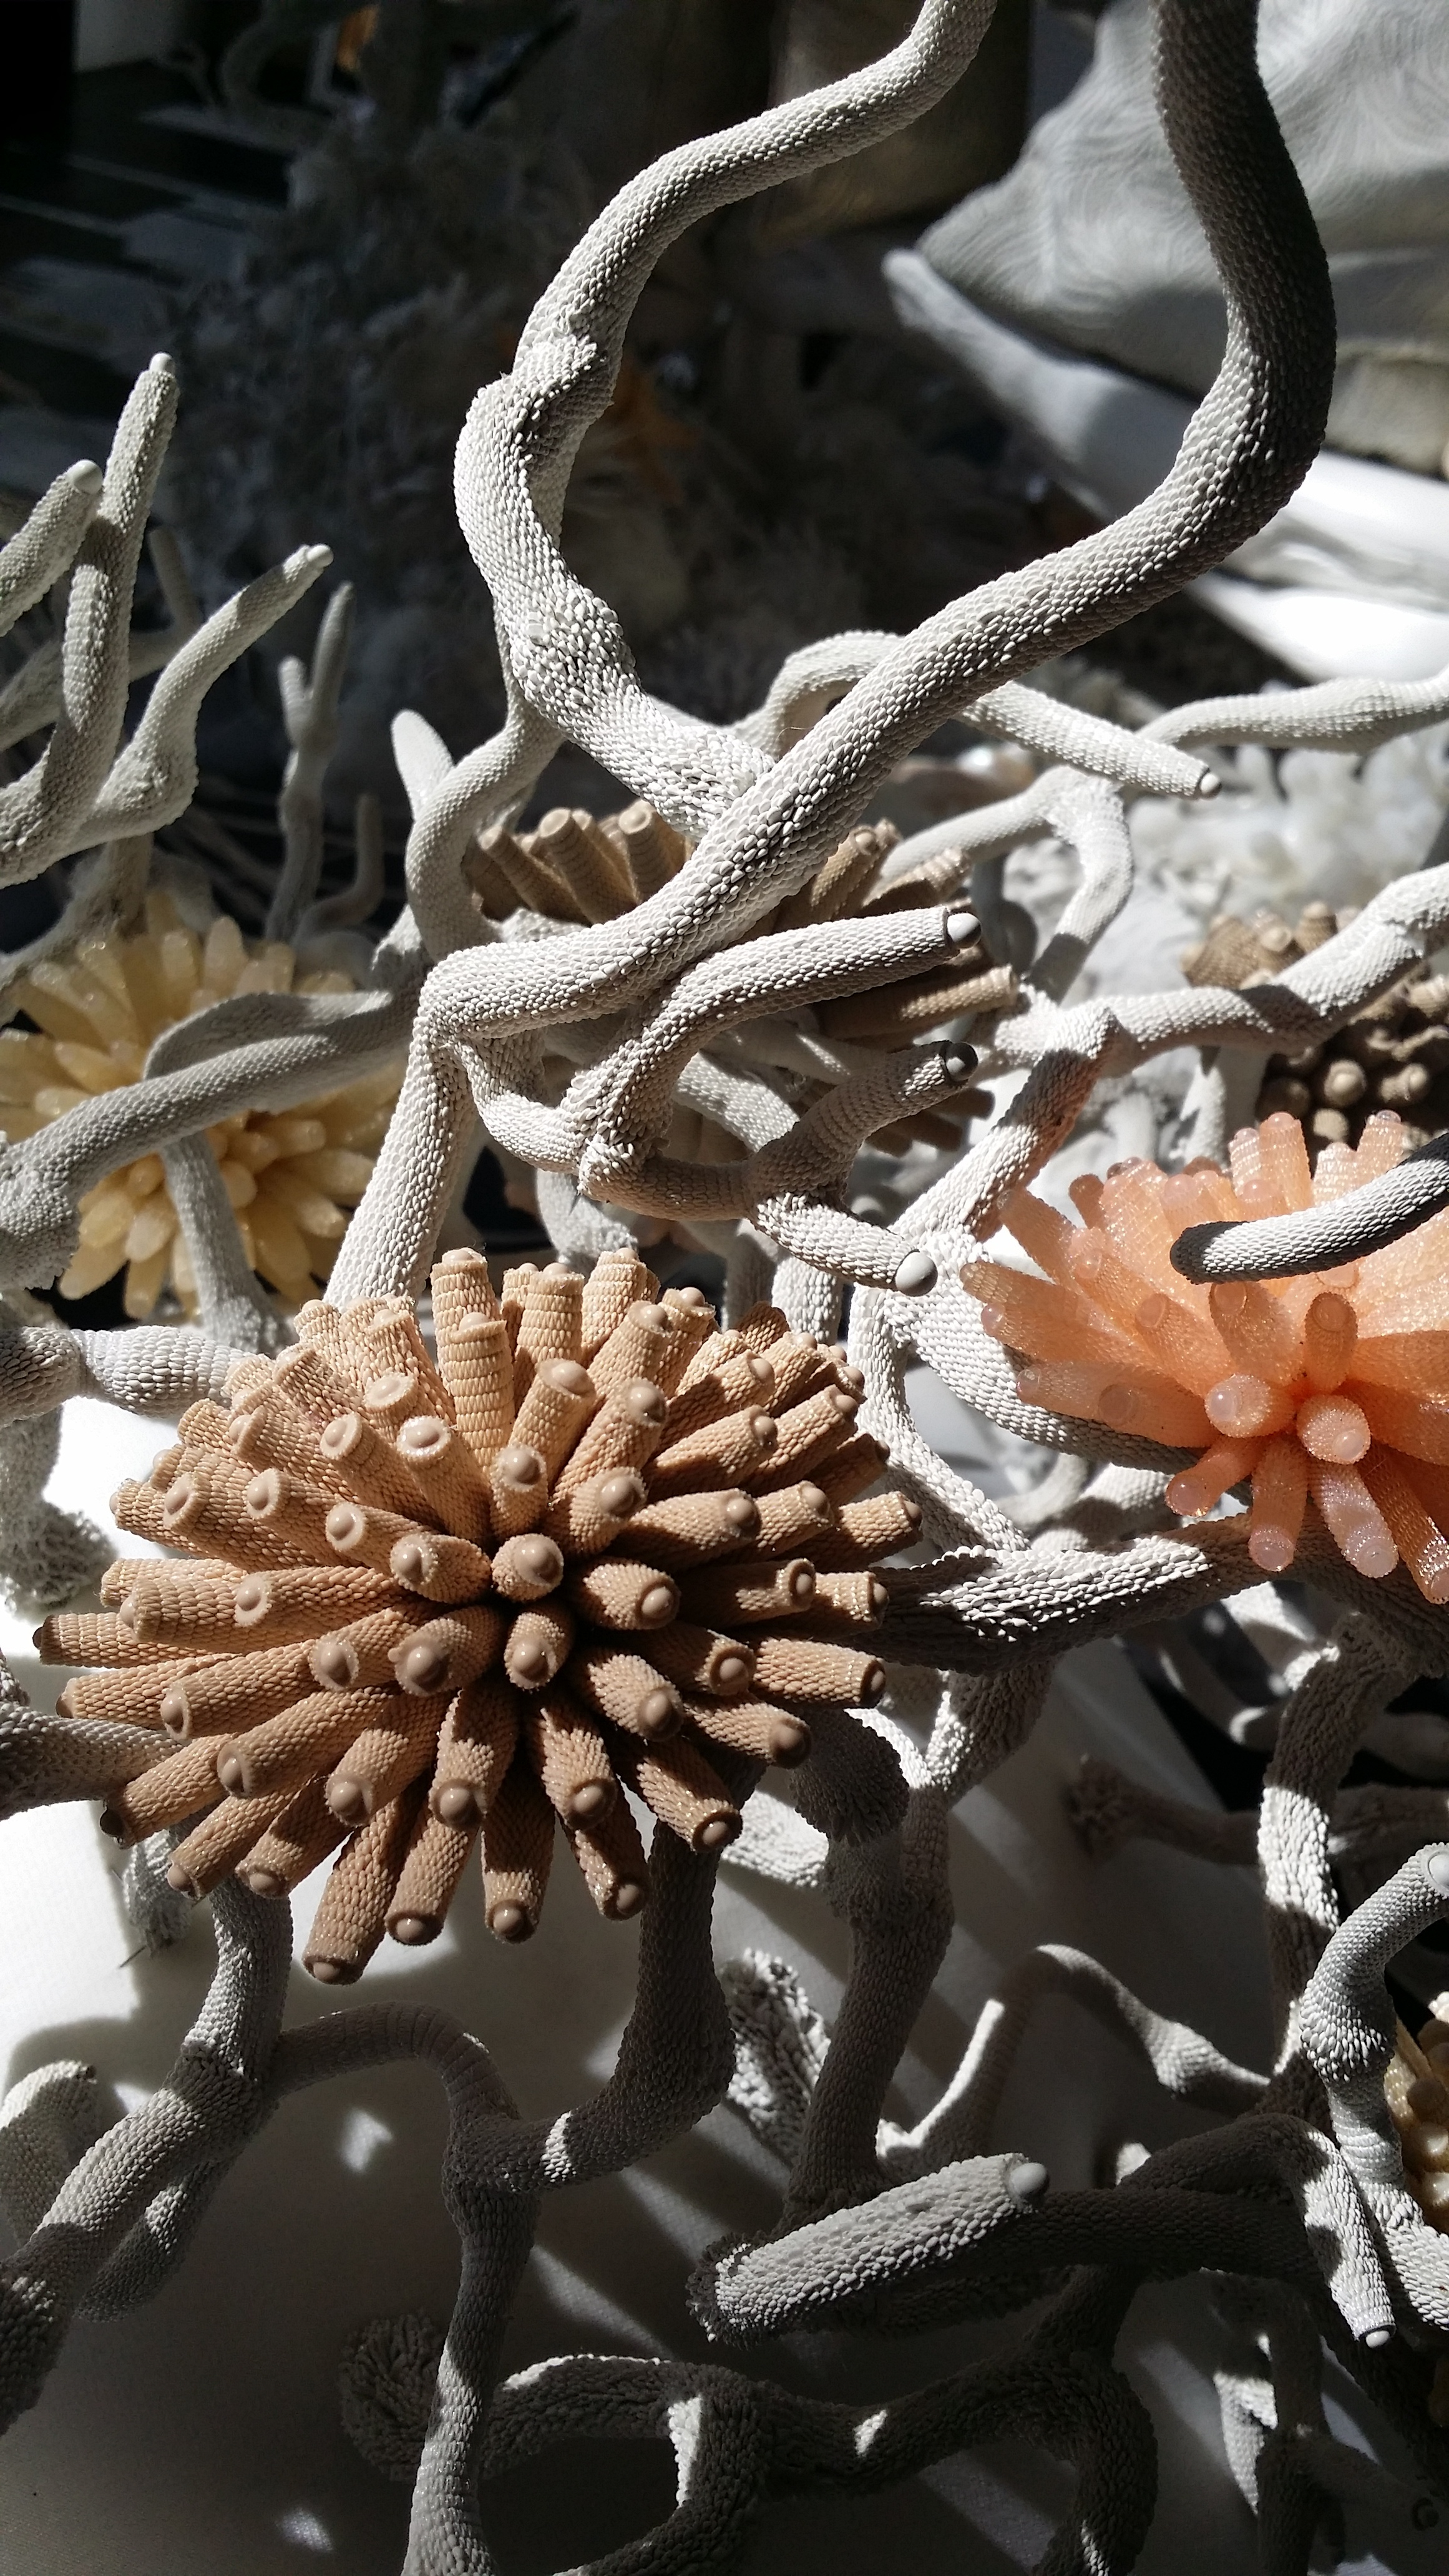 Silicon and Textile Reefs and corlals Broochs by Tzuri Gueta Courtesy of the artist